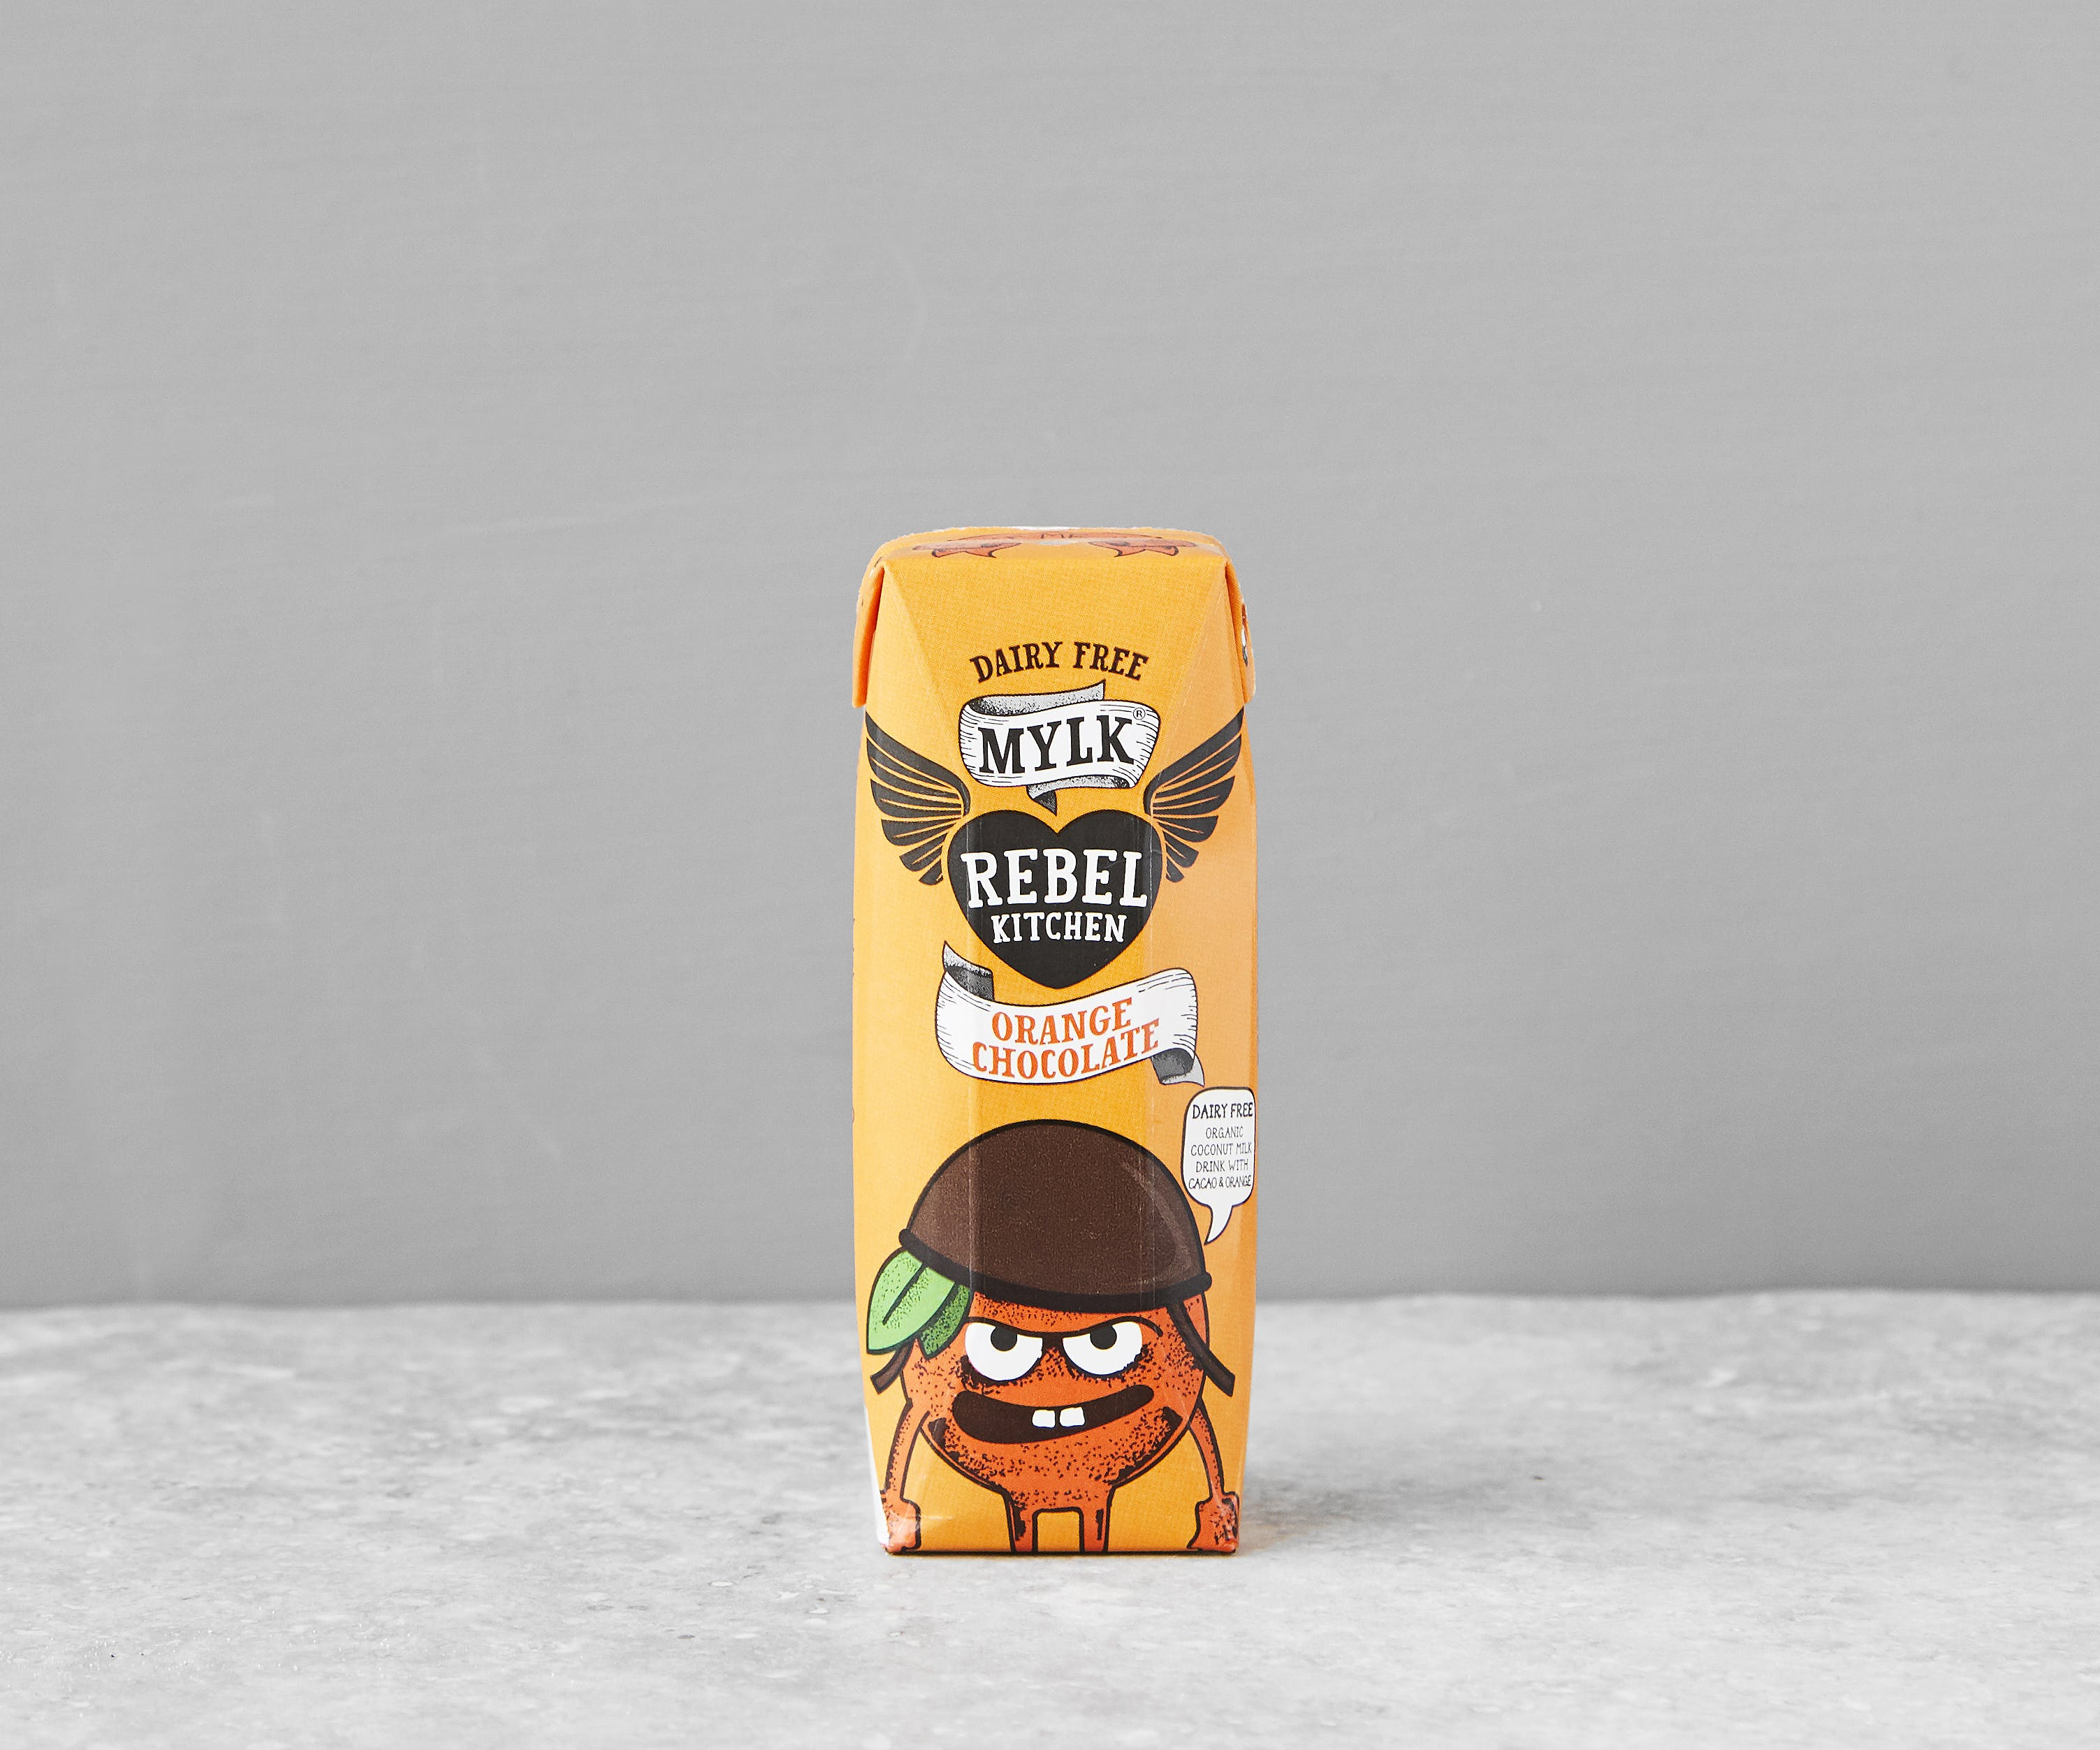 Rebel Kitchen Orange Choc Dairy-Free Mylk (Milk Alternative)